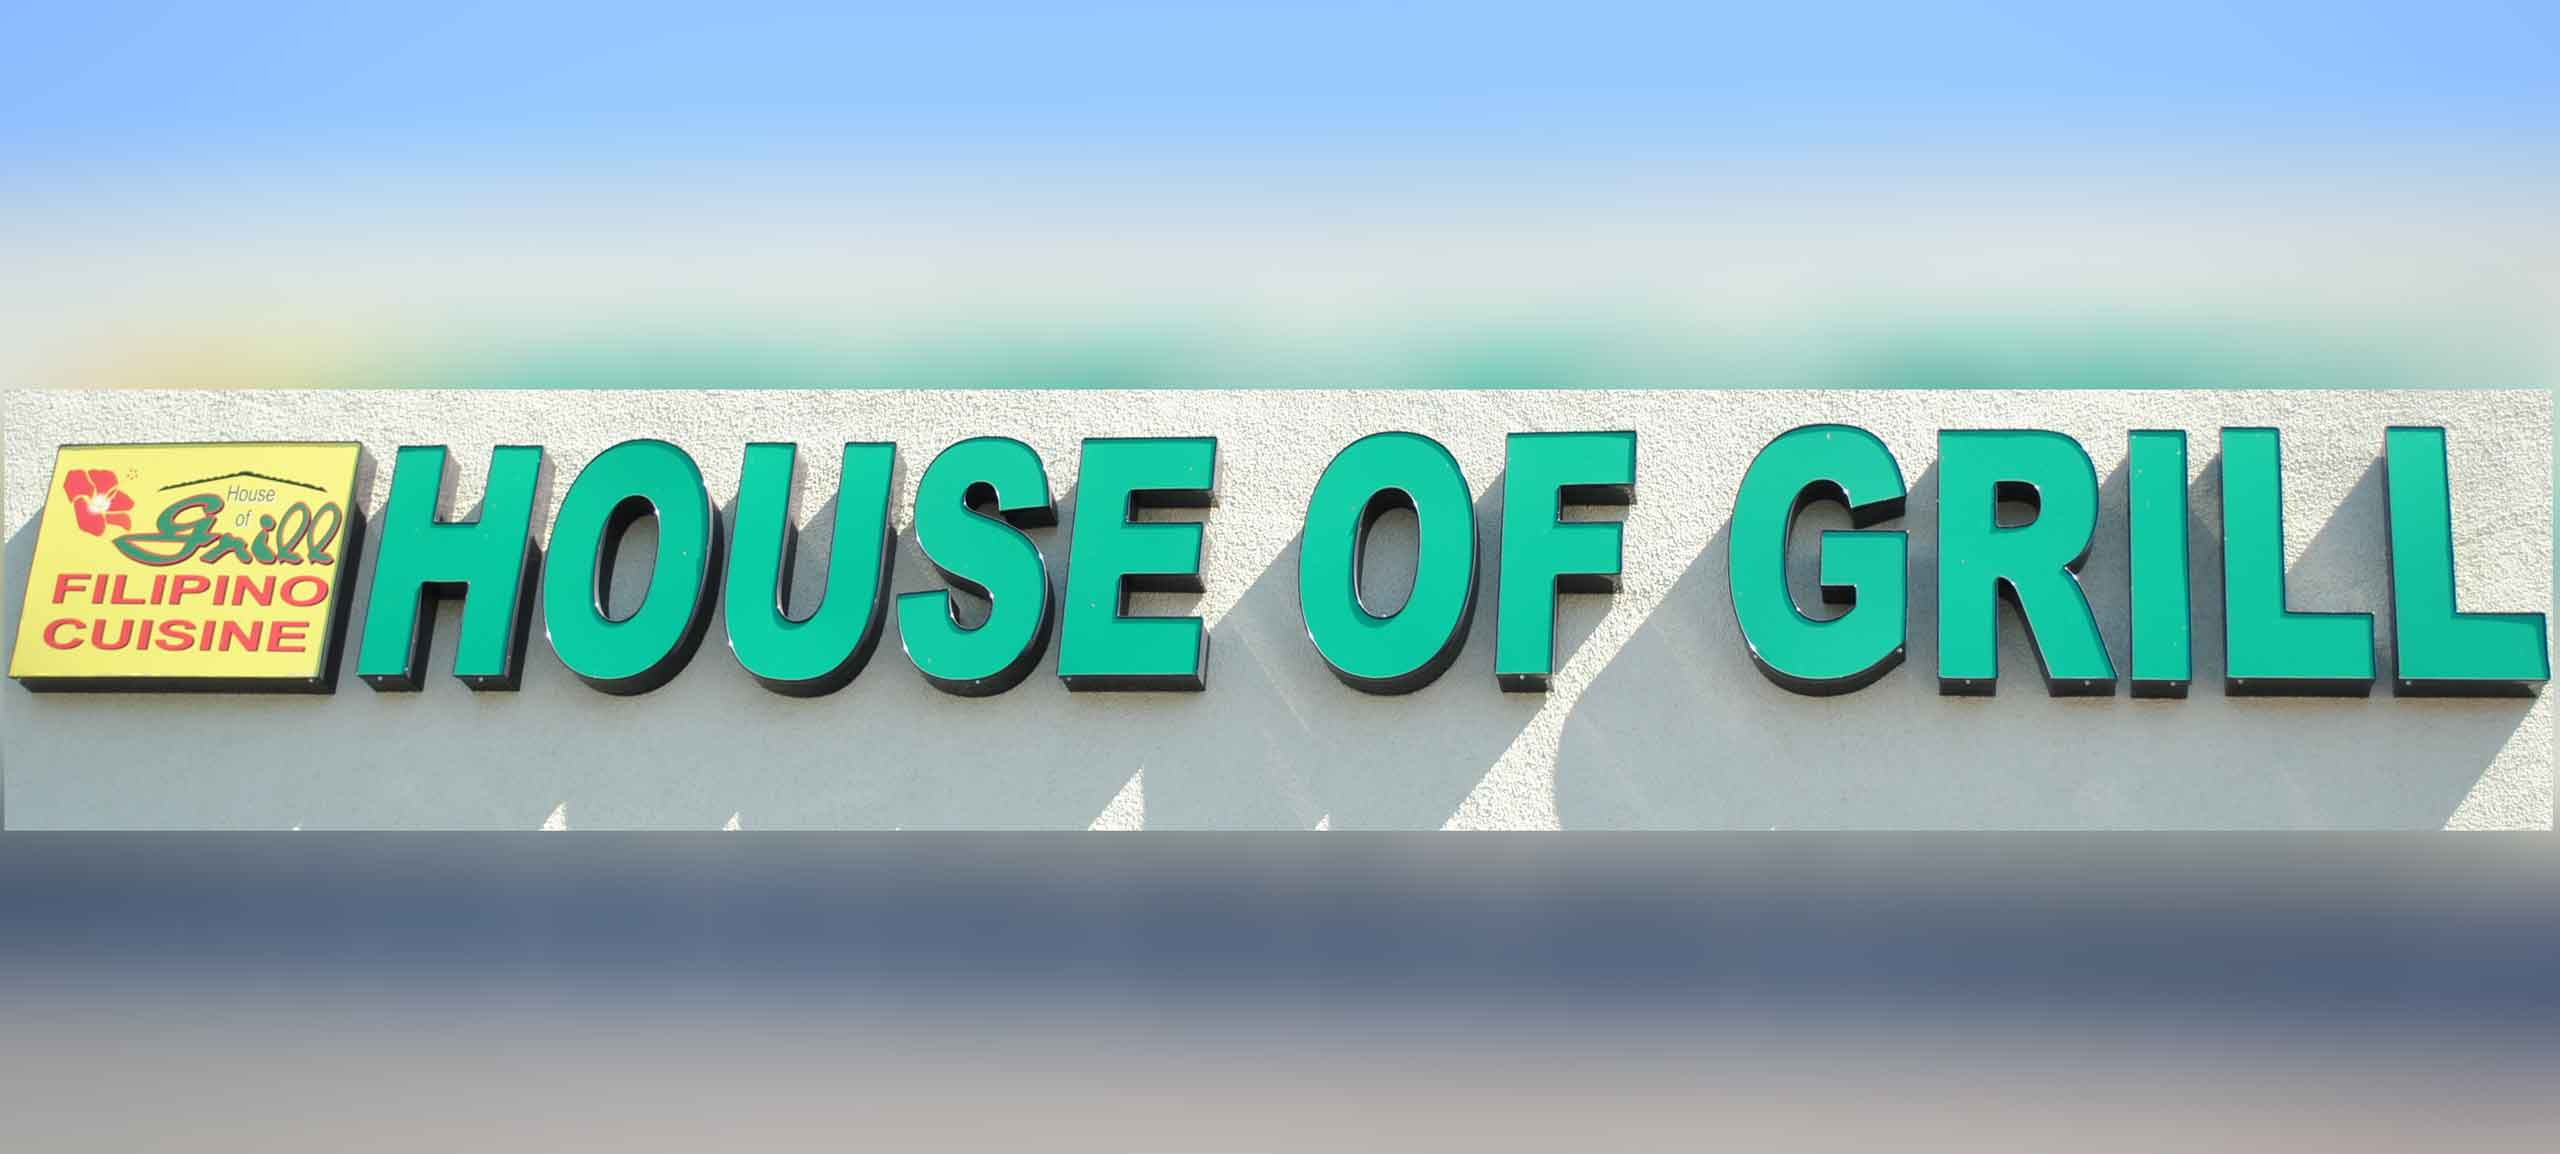 House-Of-Grill-About-Background